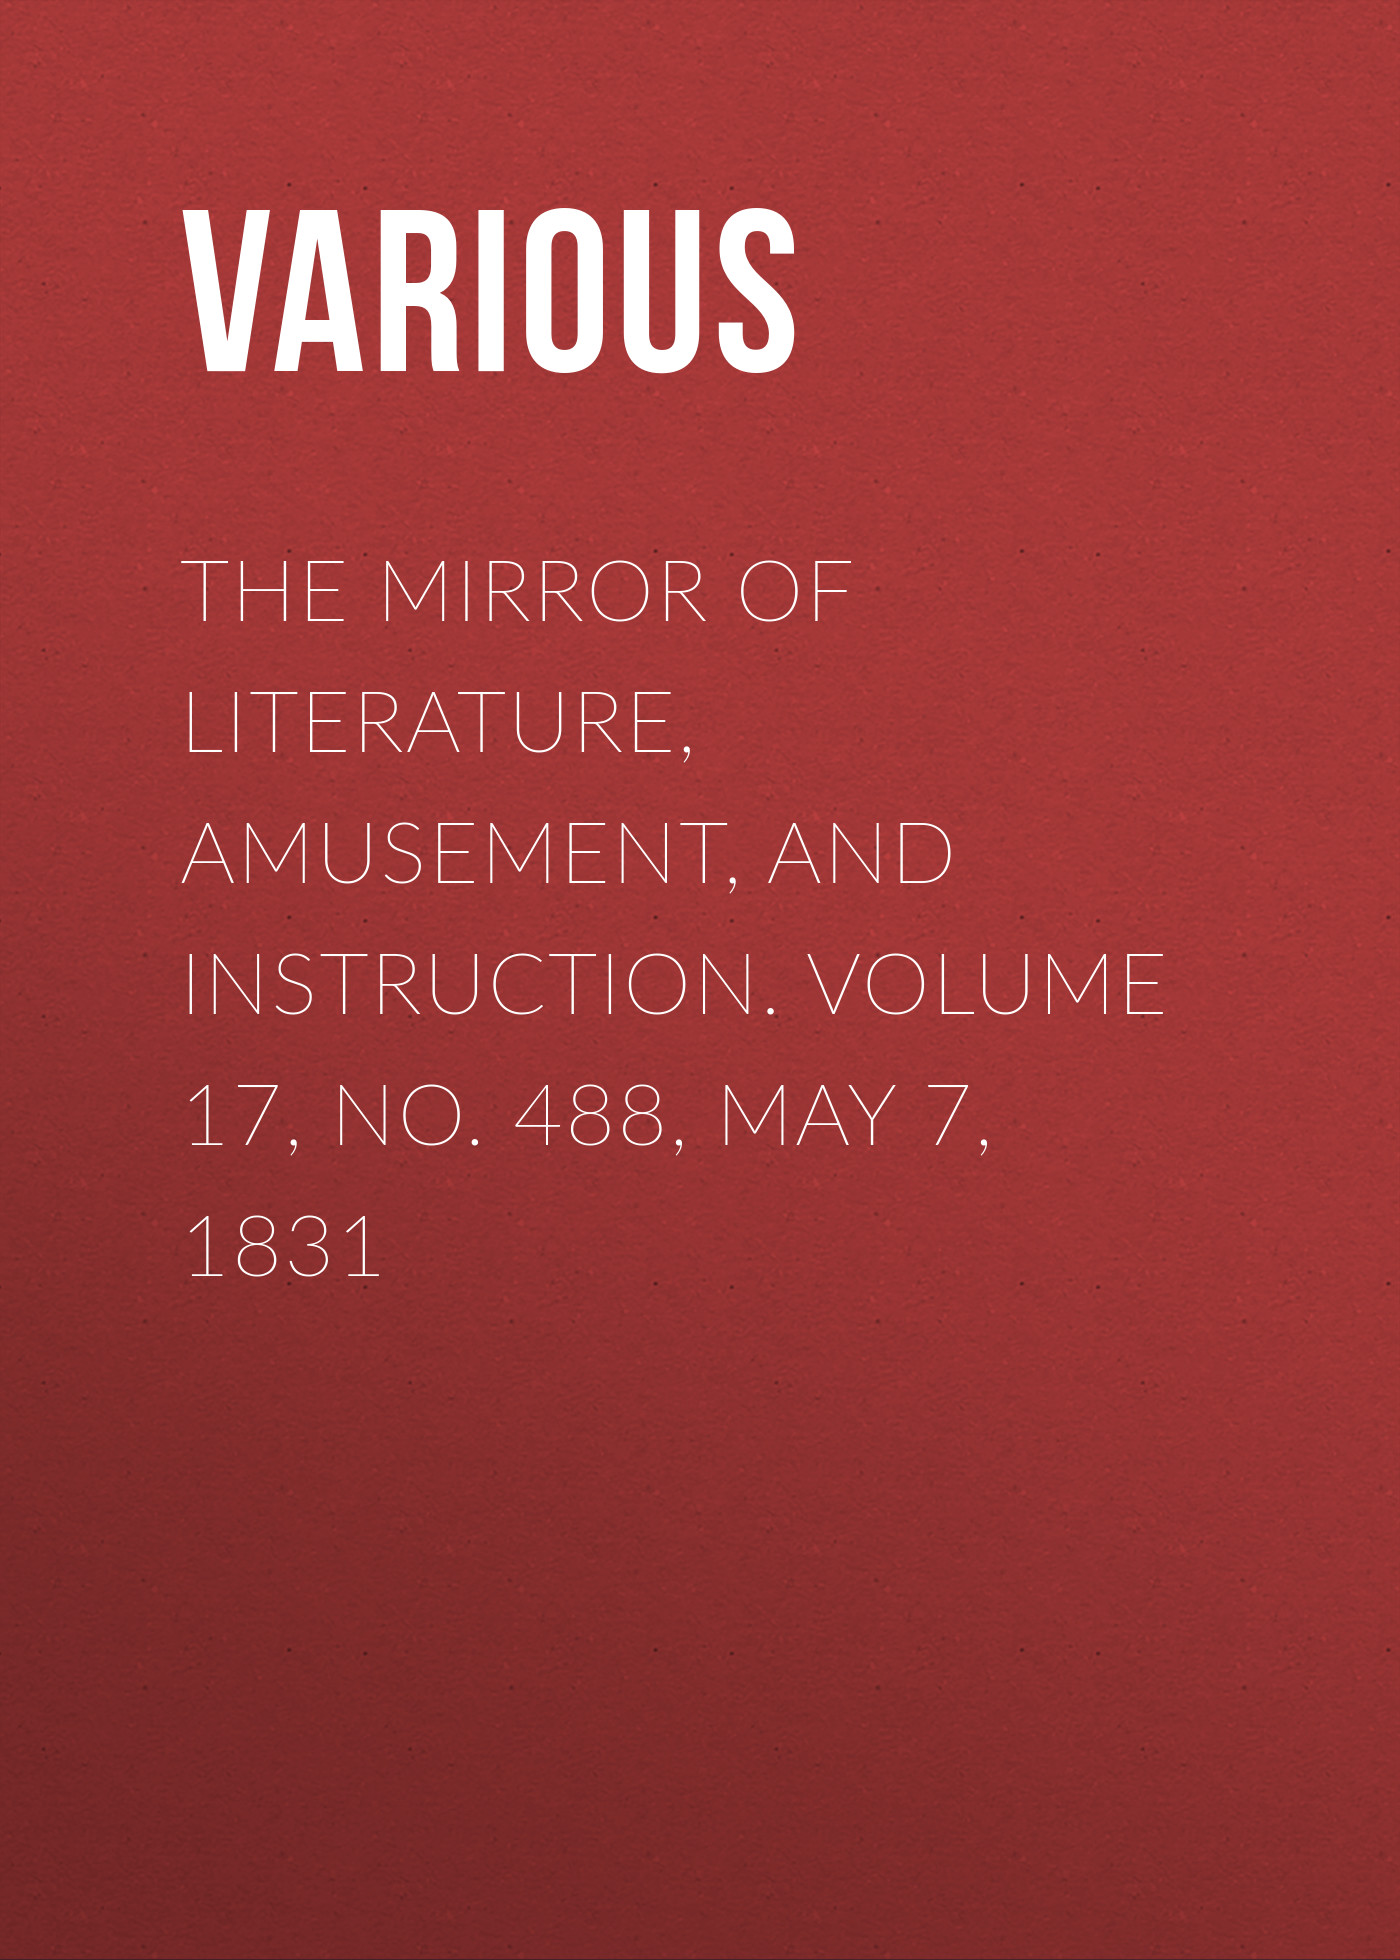 Various The Mirror of Literature, Amusement, and Instruction. Volume 17, No. 488, May 7, 1831 various the mirror of literature amusement and instruction volume 17 no 495 june 25 1831